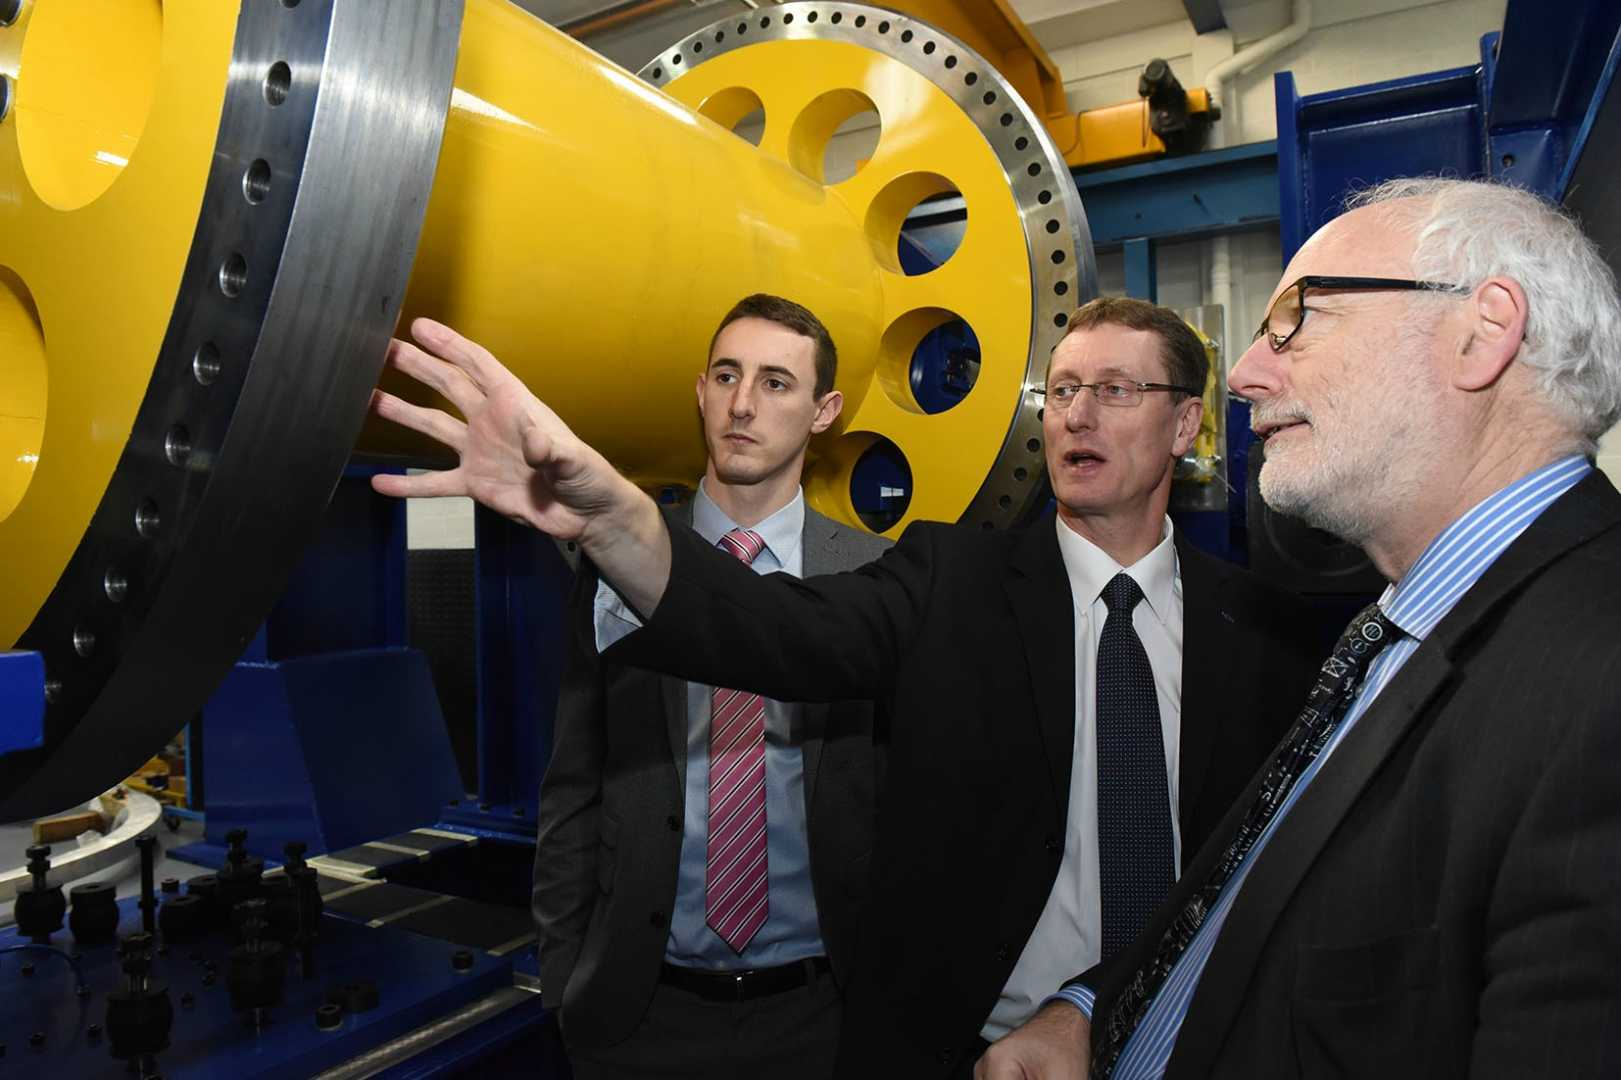 L to R: Adam Titchen (EEF), Neil Wyke (Georg UK) and Neil Mallinson (Warwick Manufacturing Group).